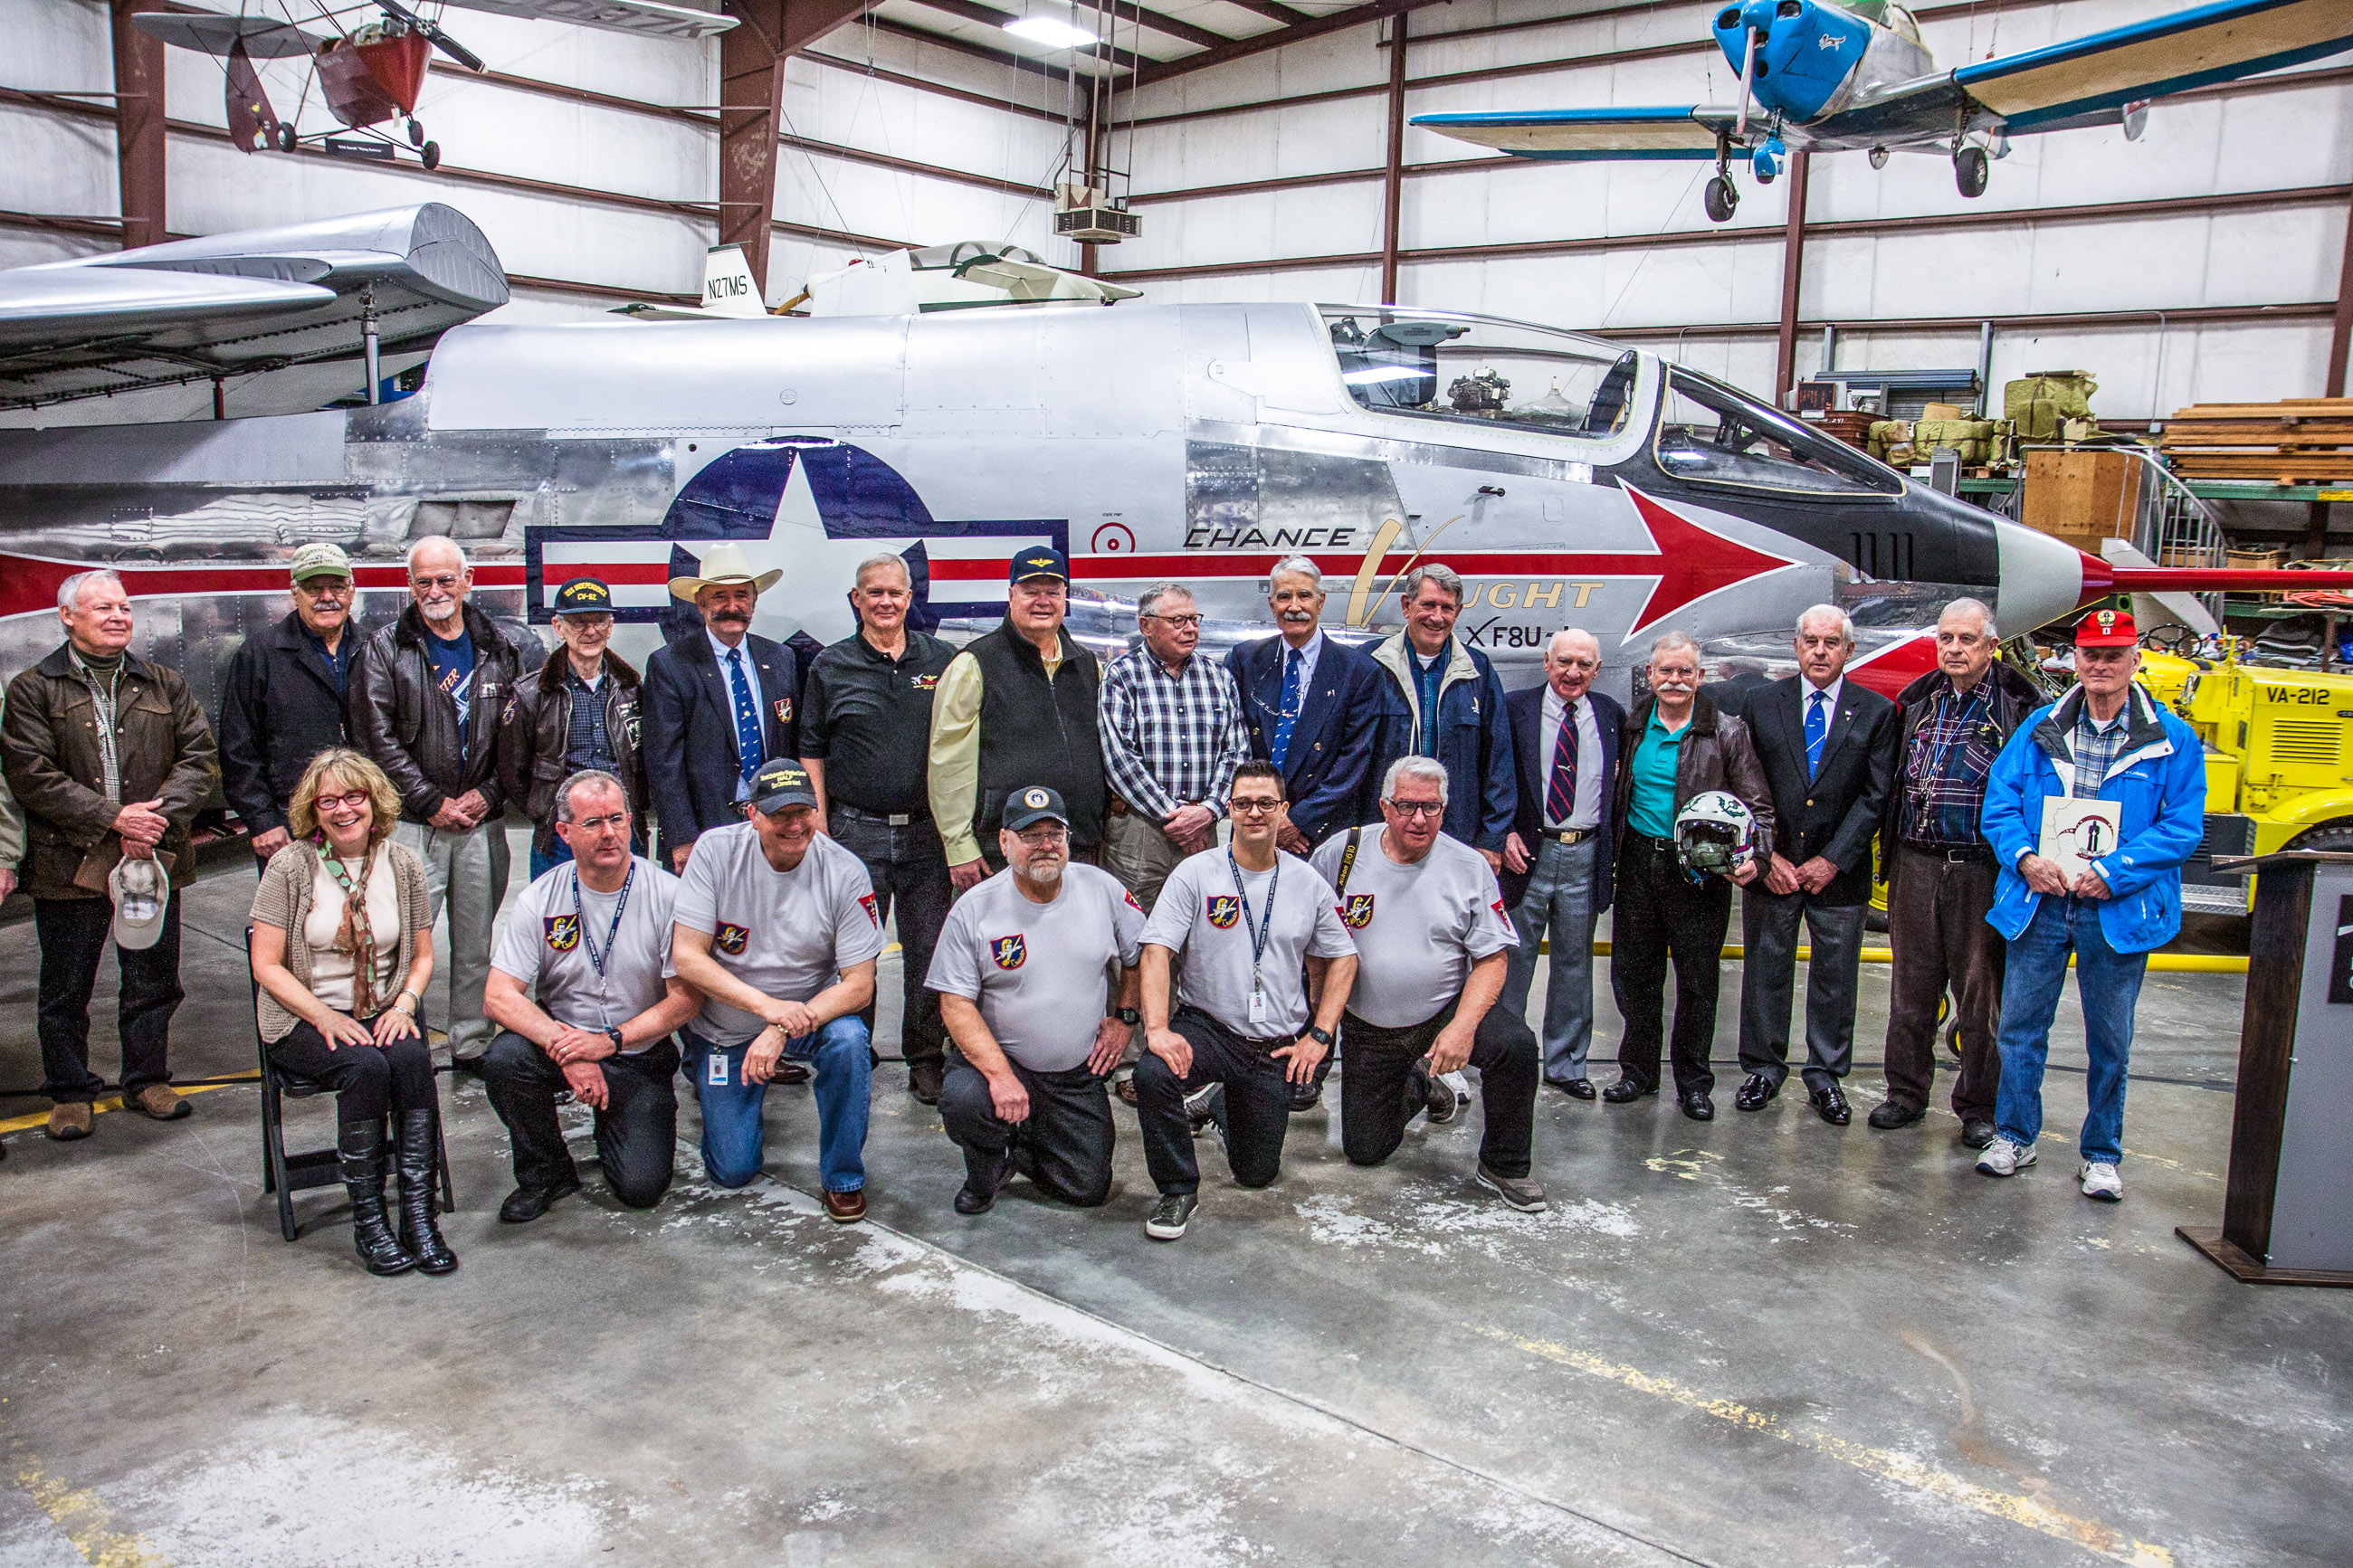 The Museum of Flight's restoration team (kneeling in t-shirts) and the honored guests - the former Crusader pilots standing behind. (photo by Ted Huetter/Museum of Flight)